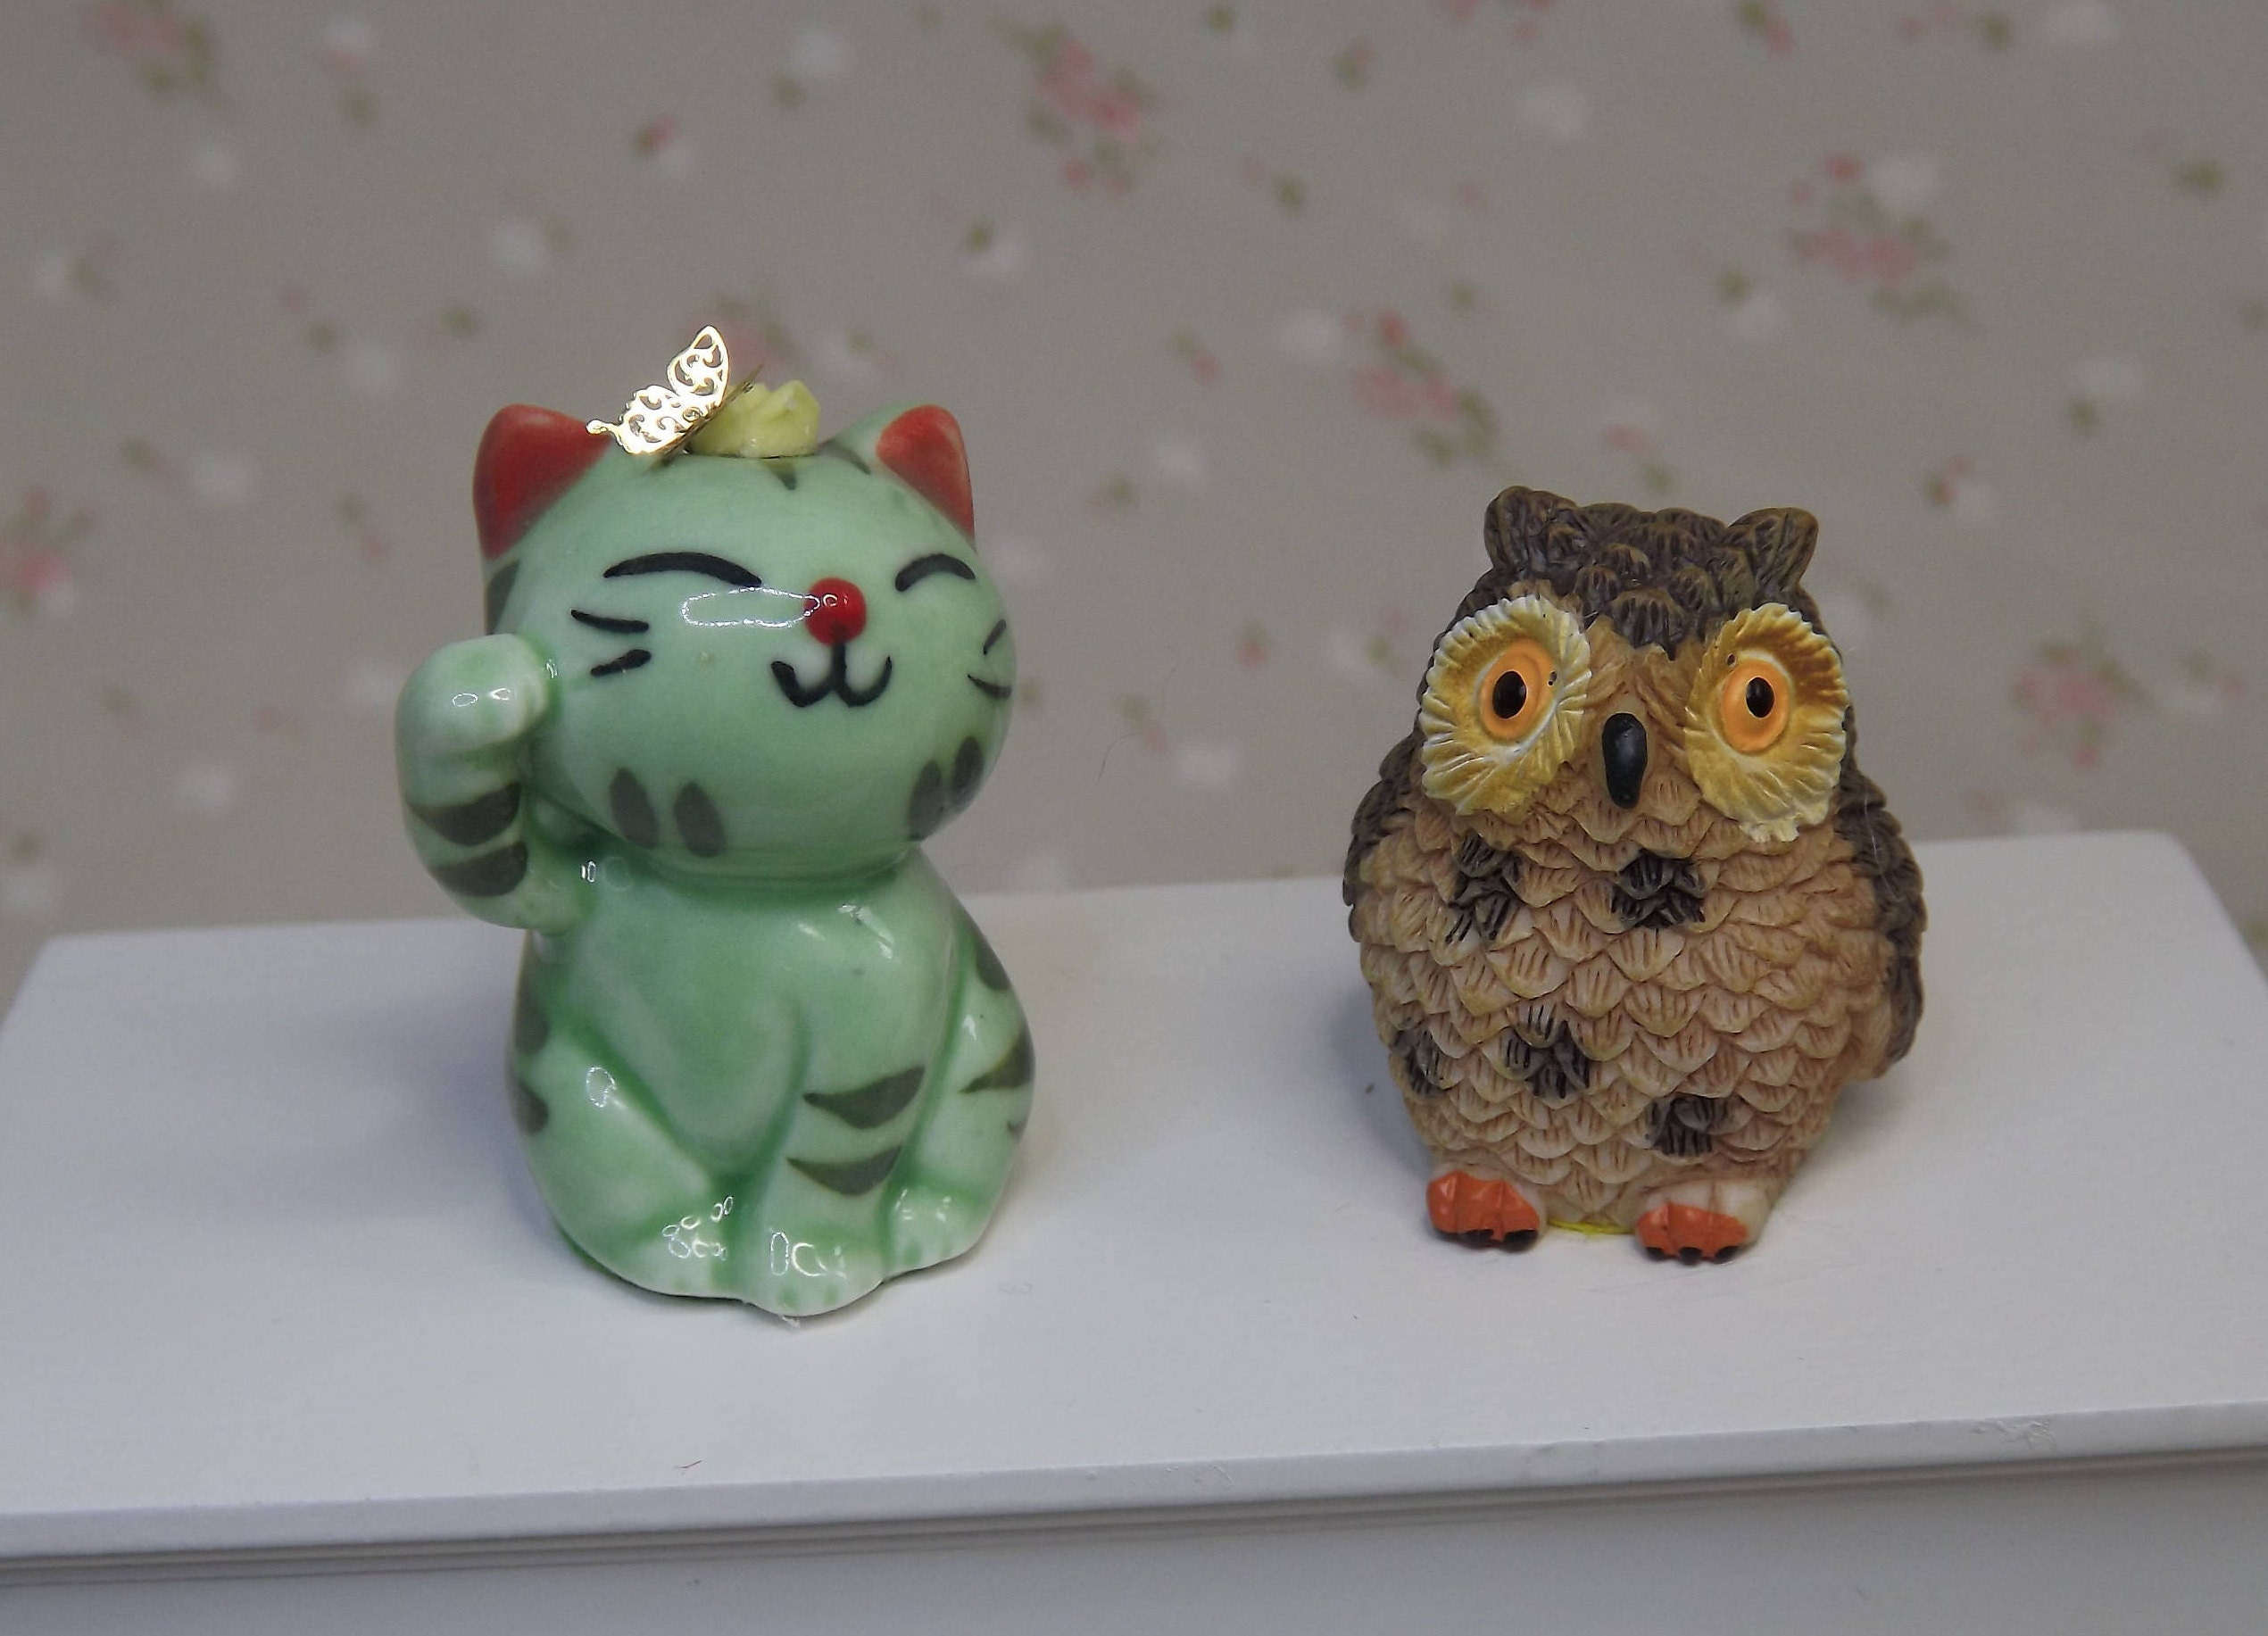 Miniature Dollhouse Ceramic Owl Figurines Yellow Statue Home Decor Collectibles